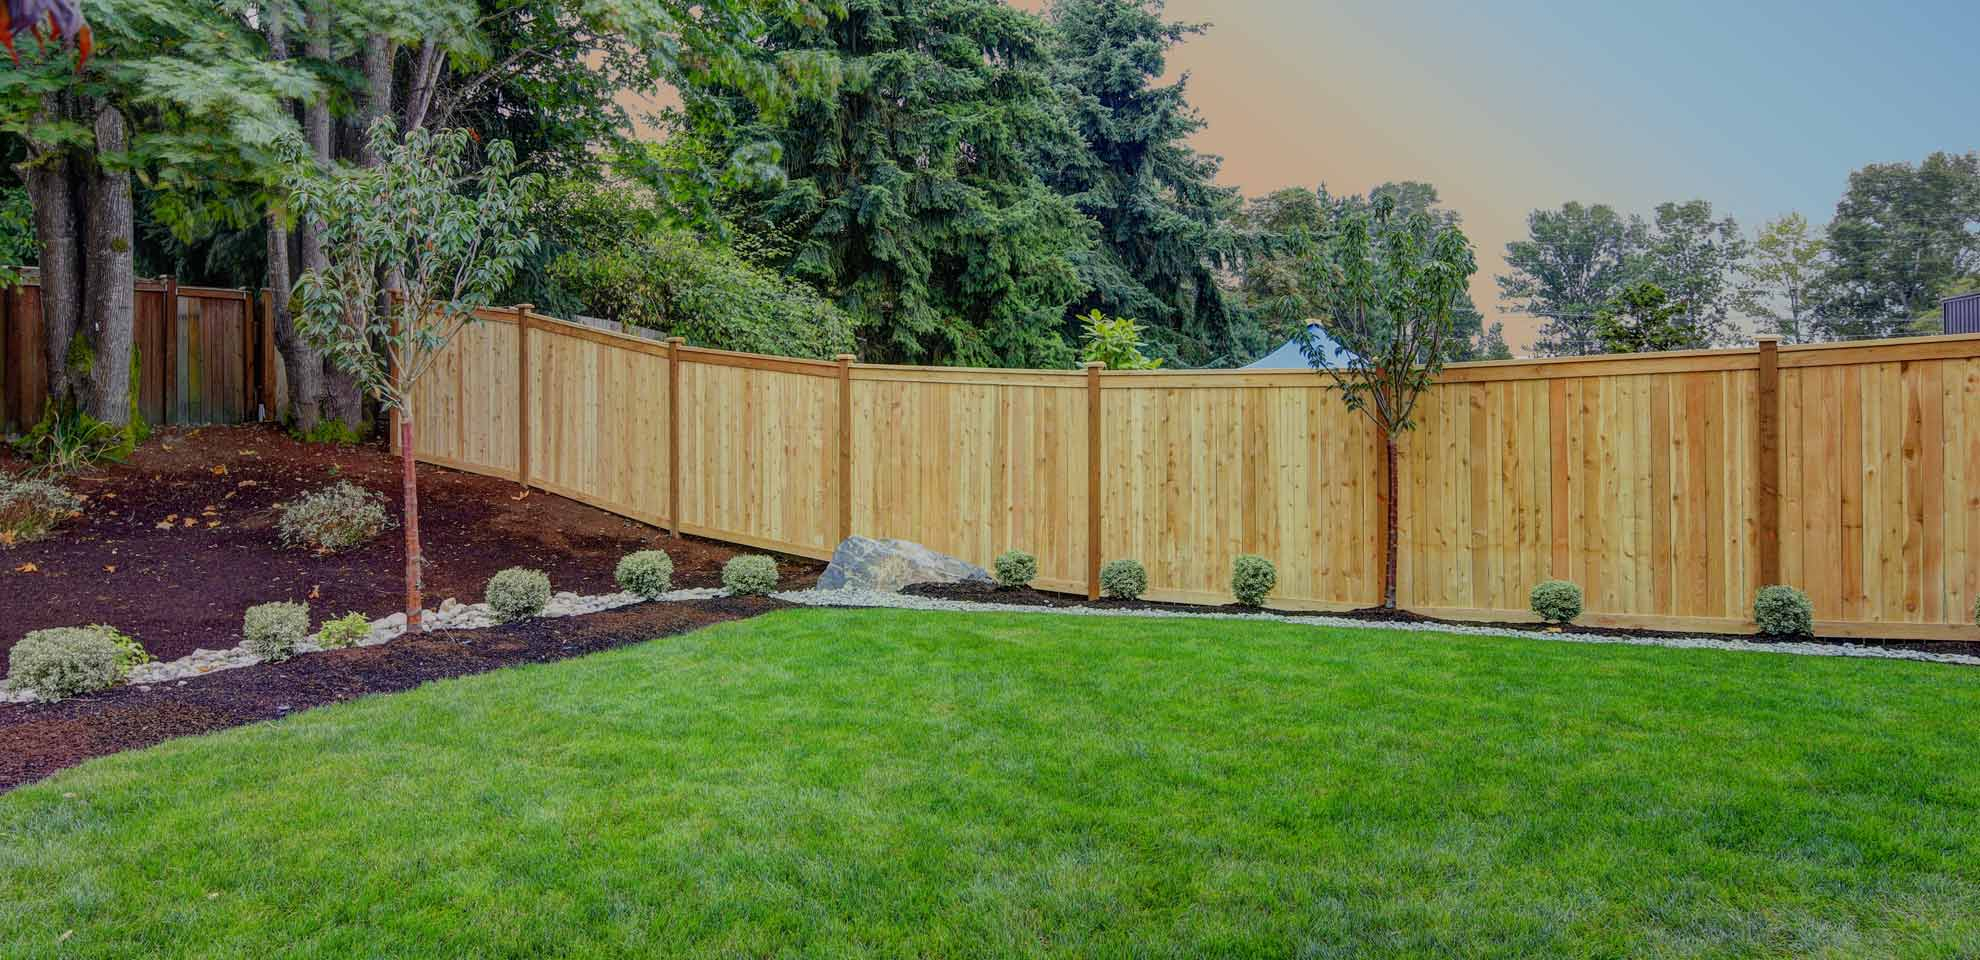 Home Fence All Outdoor Home Improvement Ottawa On within 16 Smart Ideas How to Makeover Fencing Backyard